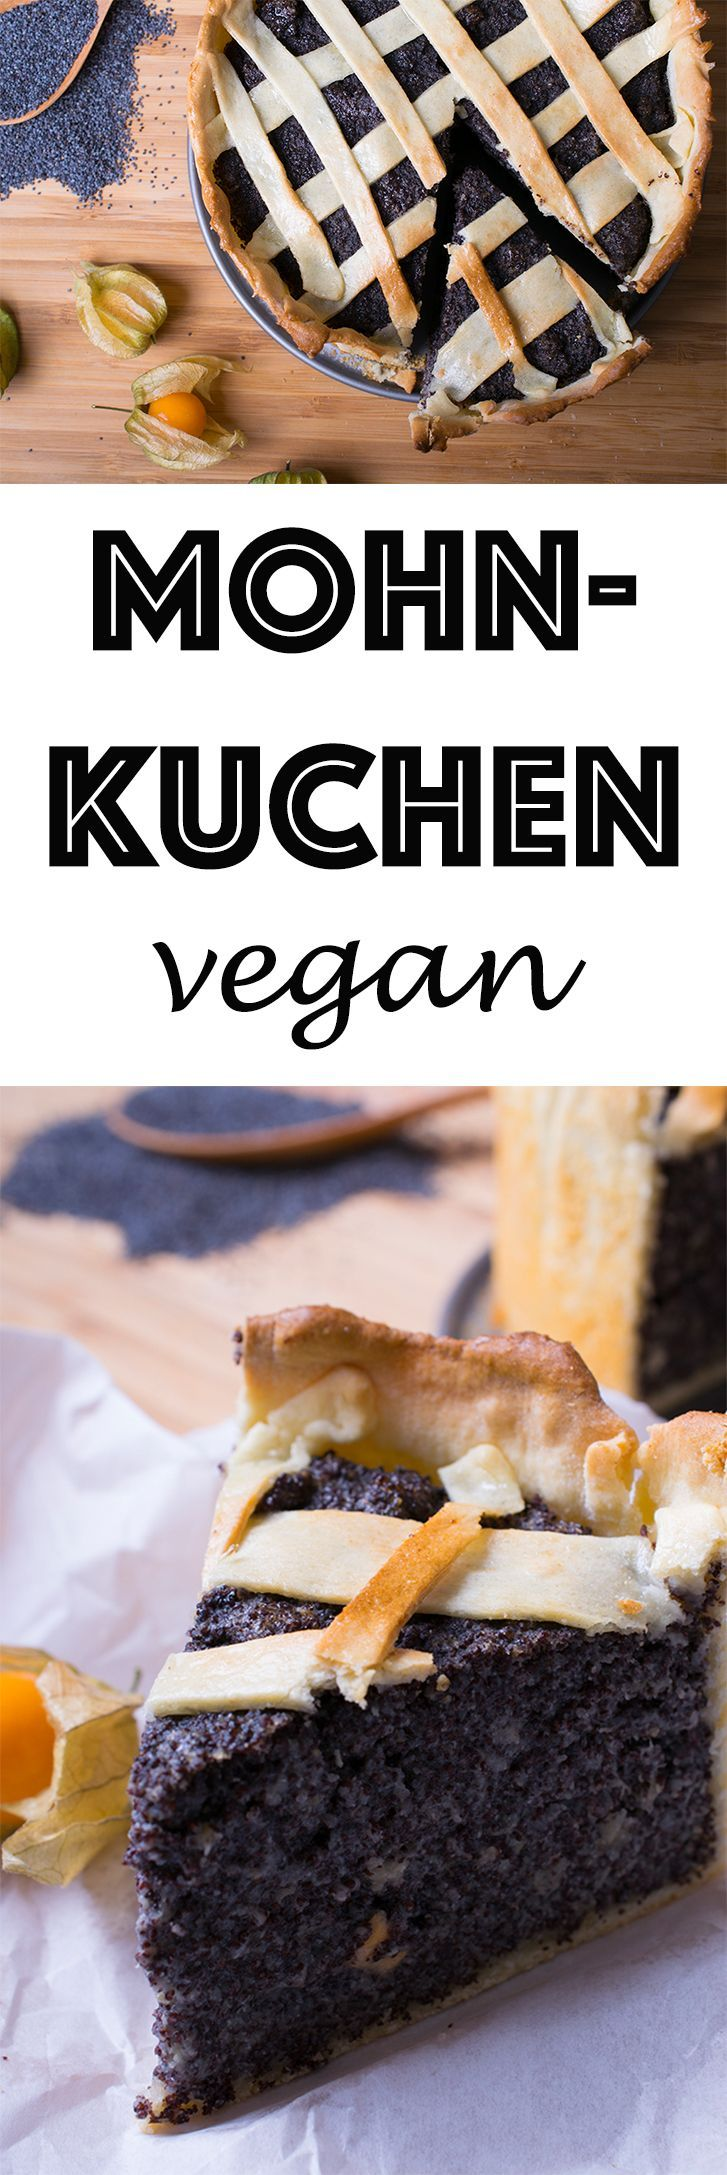 Endlich: Gesunder & Veganer Mohnkuchen - *** Vegan poppy-seed cake with silken tofu. This and more other healthy recipes available at www.eat-vegan.de (english and german recipe versions available).